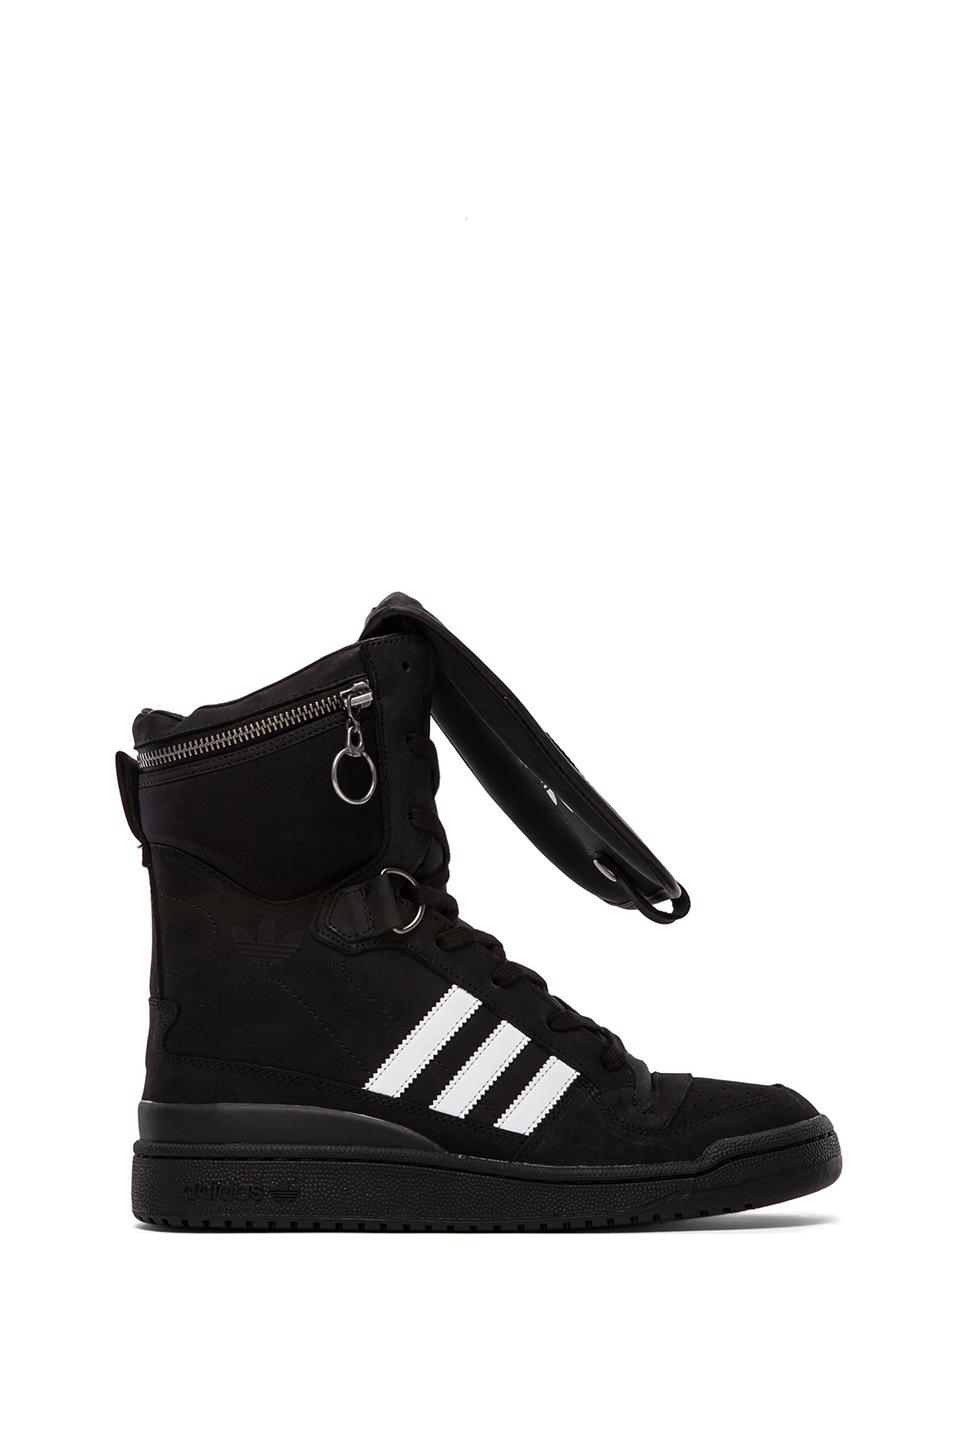 adidas Originals by Jeremy Scott Tall Boy in Black & White